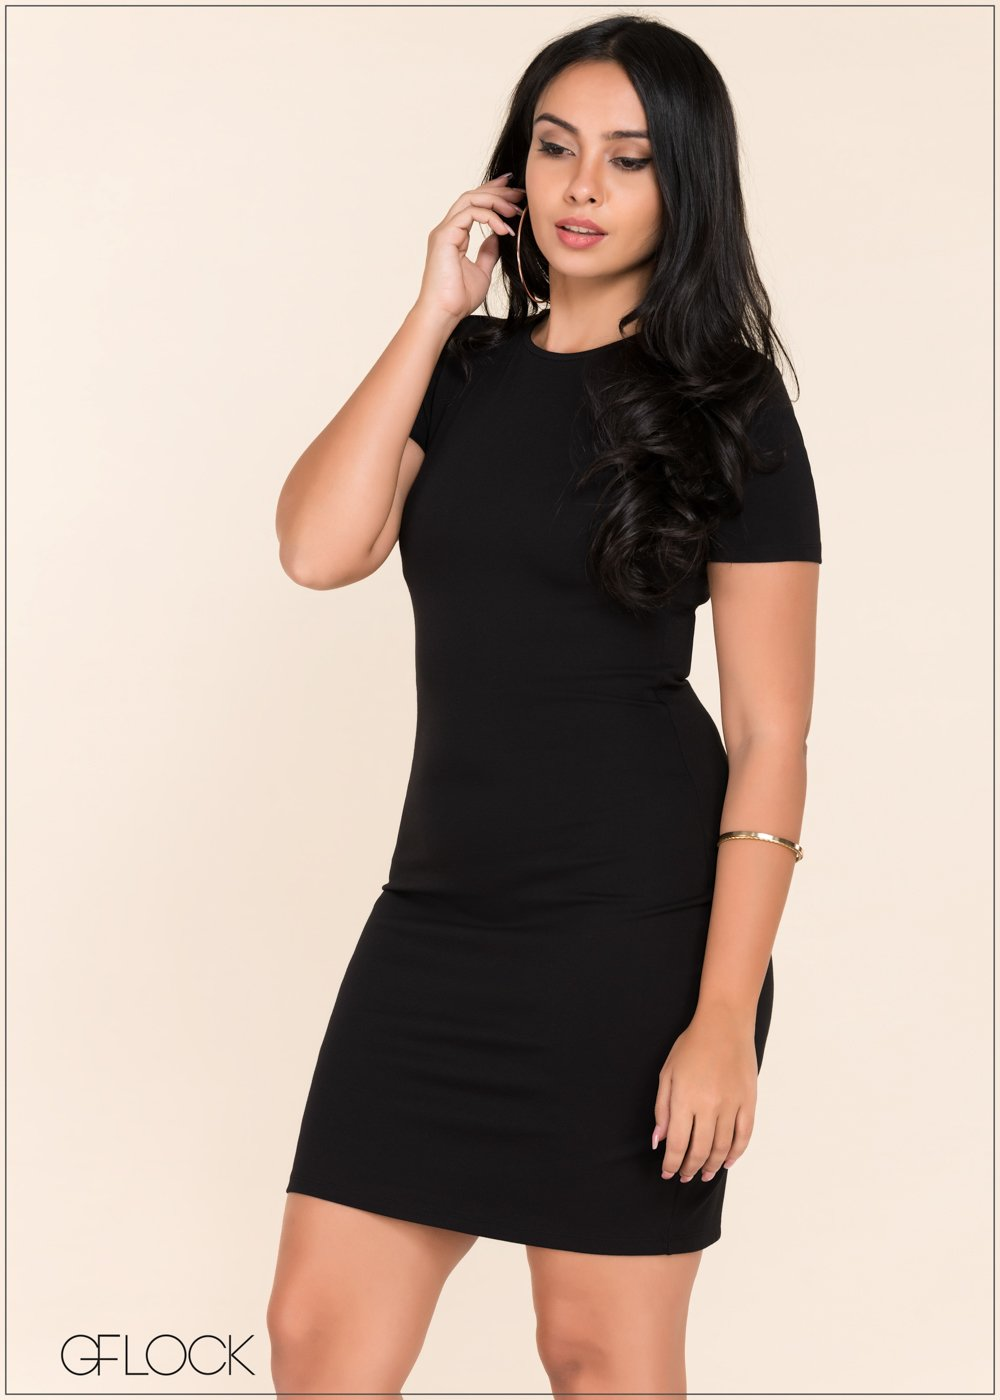 GFLOCK - [product_sku] - Women_Dresses - Knit Bodycon Dress